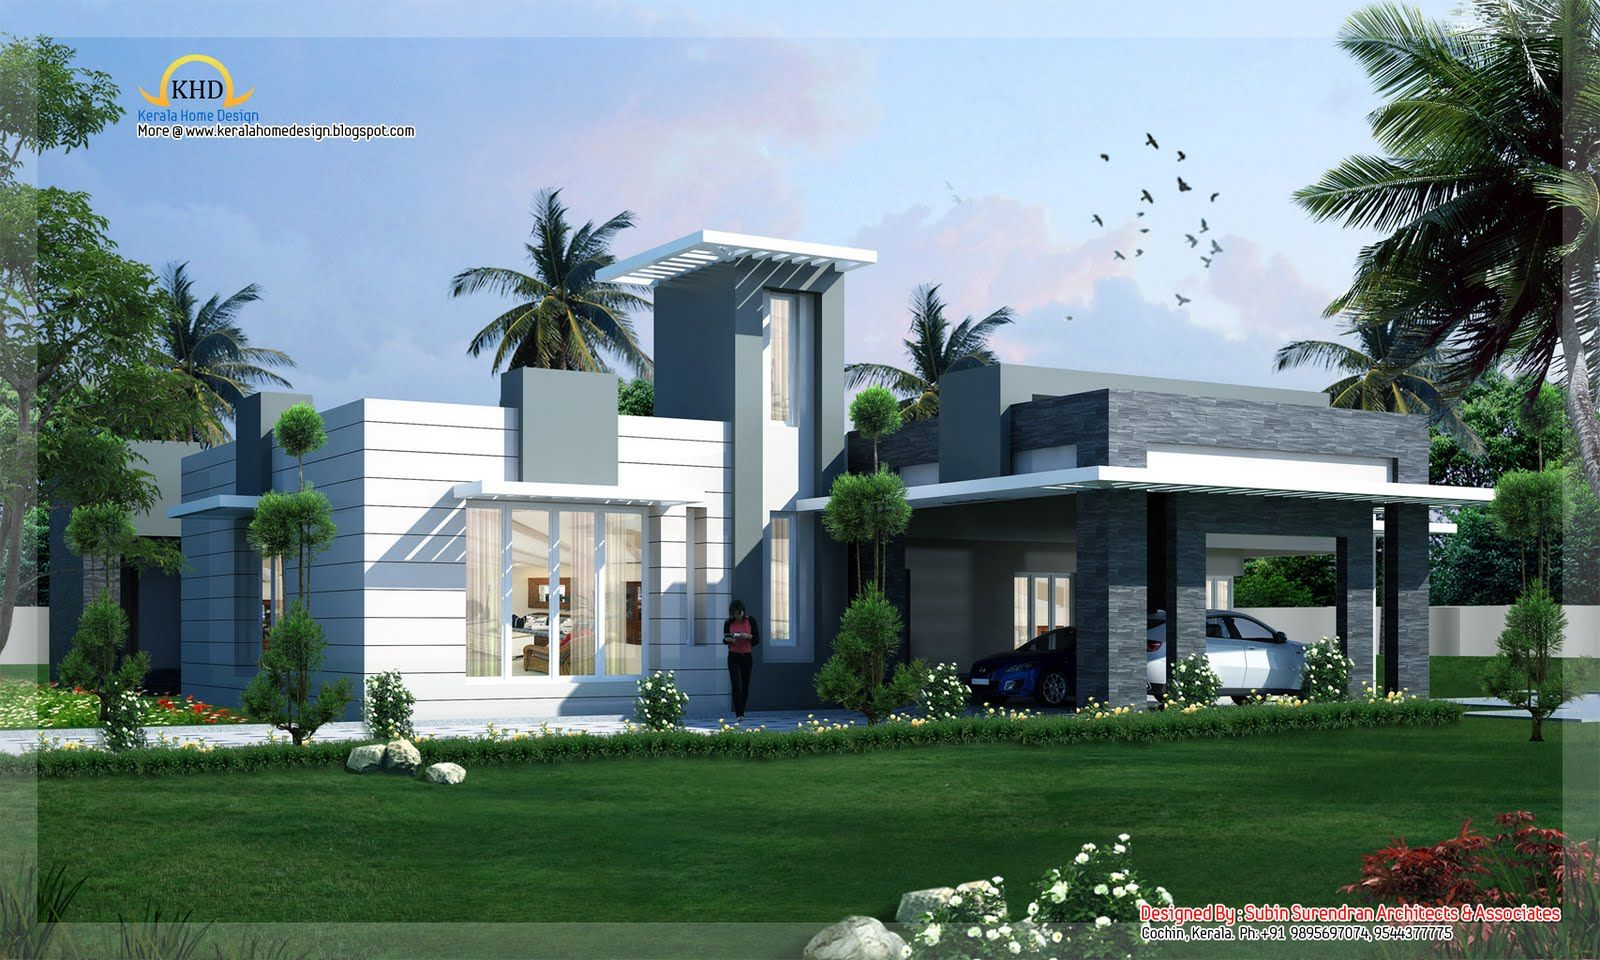 new house designs contemporary home design 418 sq m 4500 sq ft - House Designers